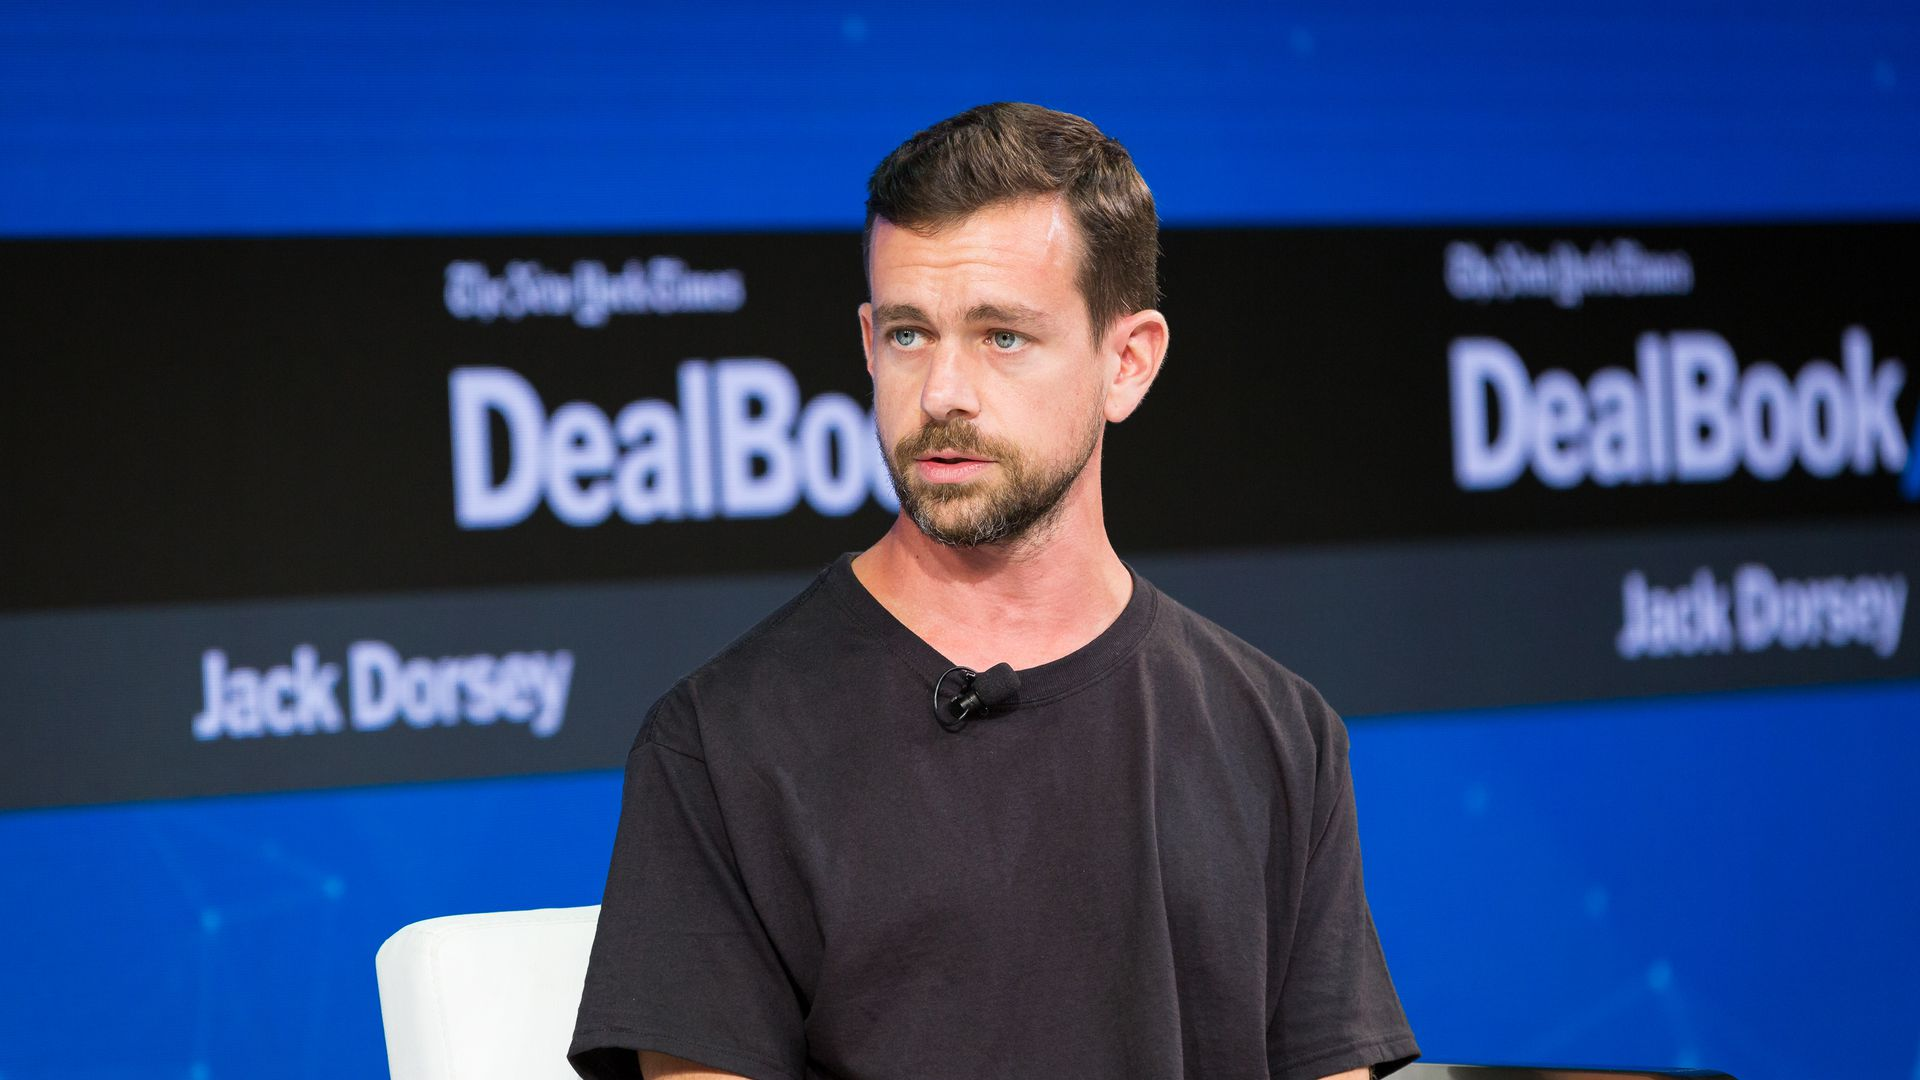 Twitter CEO Jack Dorsey at a New York Times conference